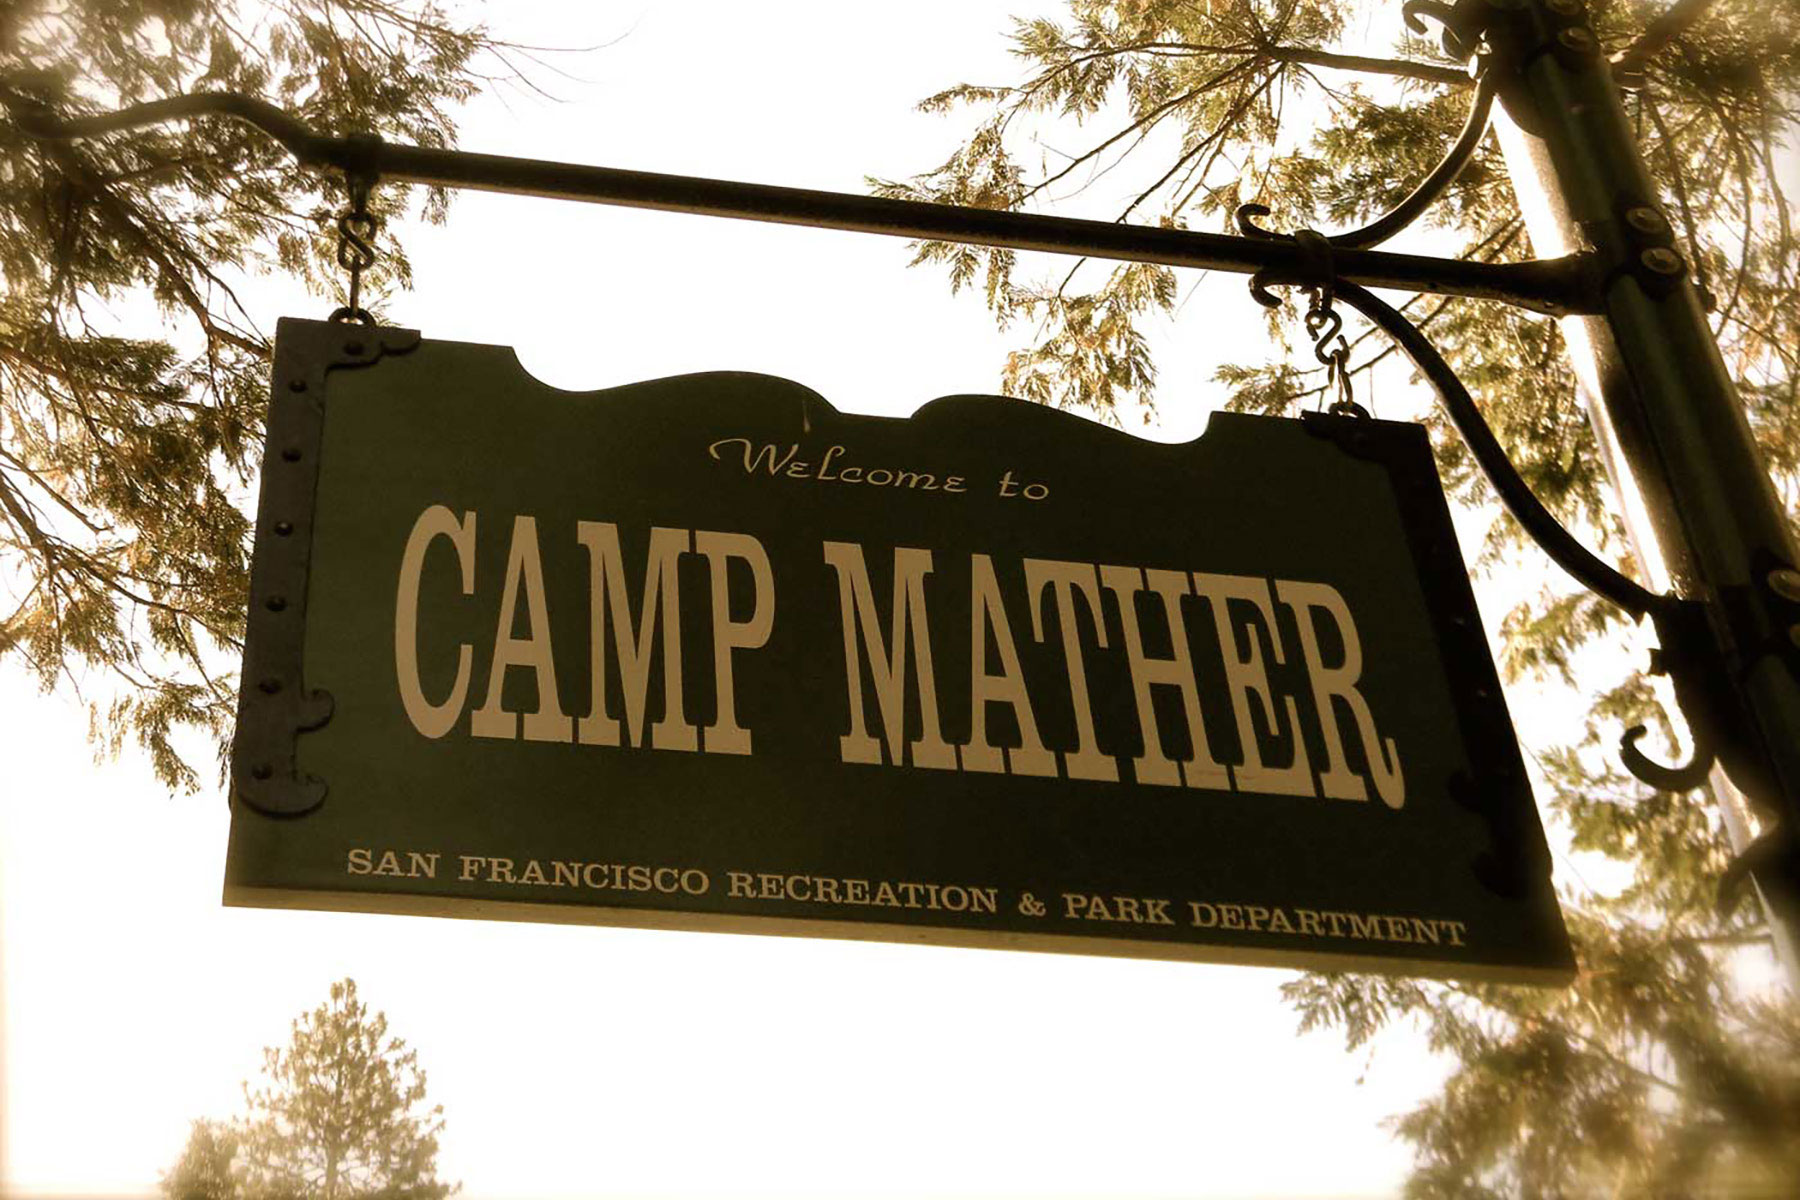 Randall Museum Mather Overnight Camp